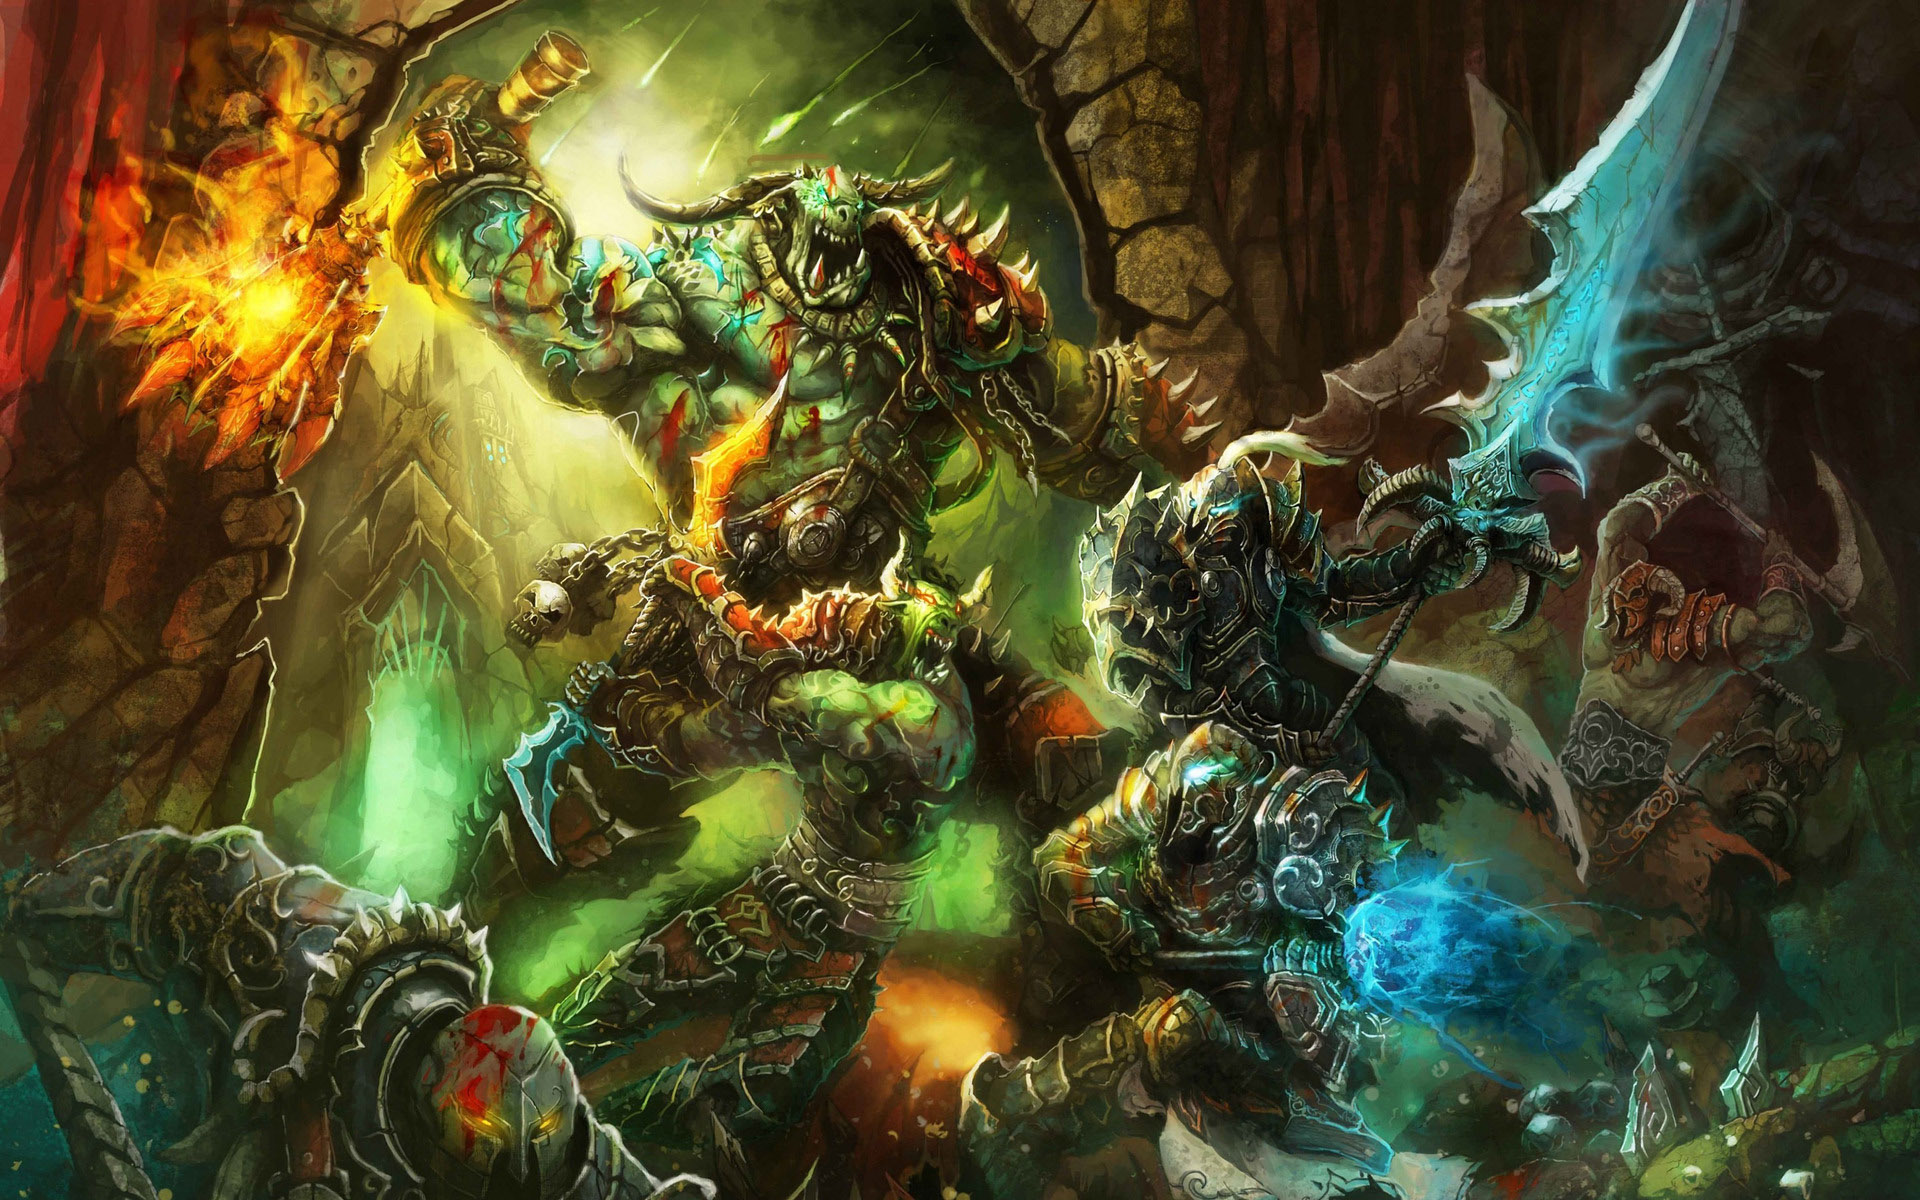 world-of-warcraft-wow-games-hd-wallpaper | wallpaper.wiki